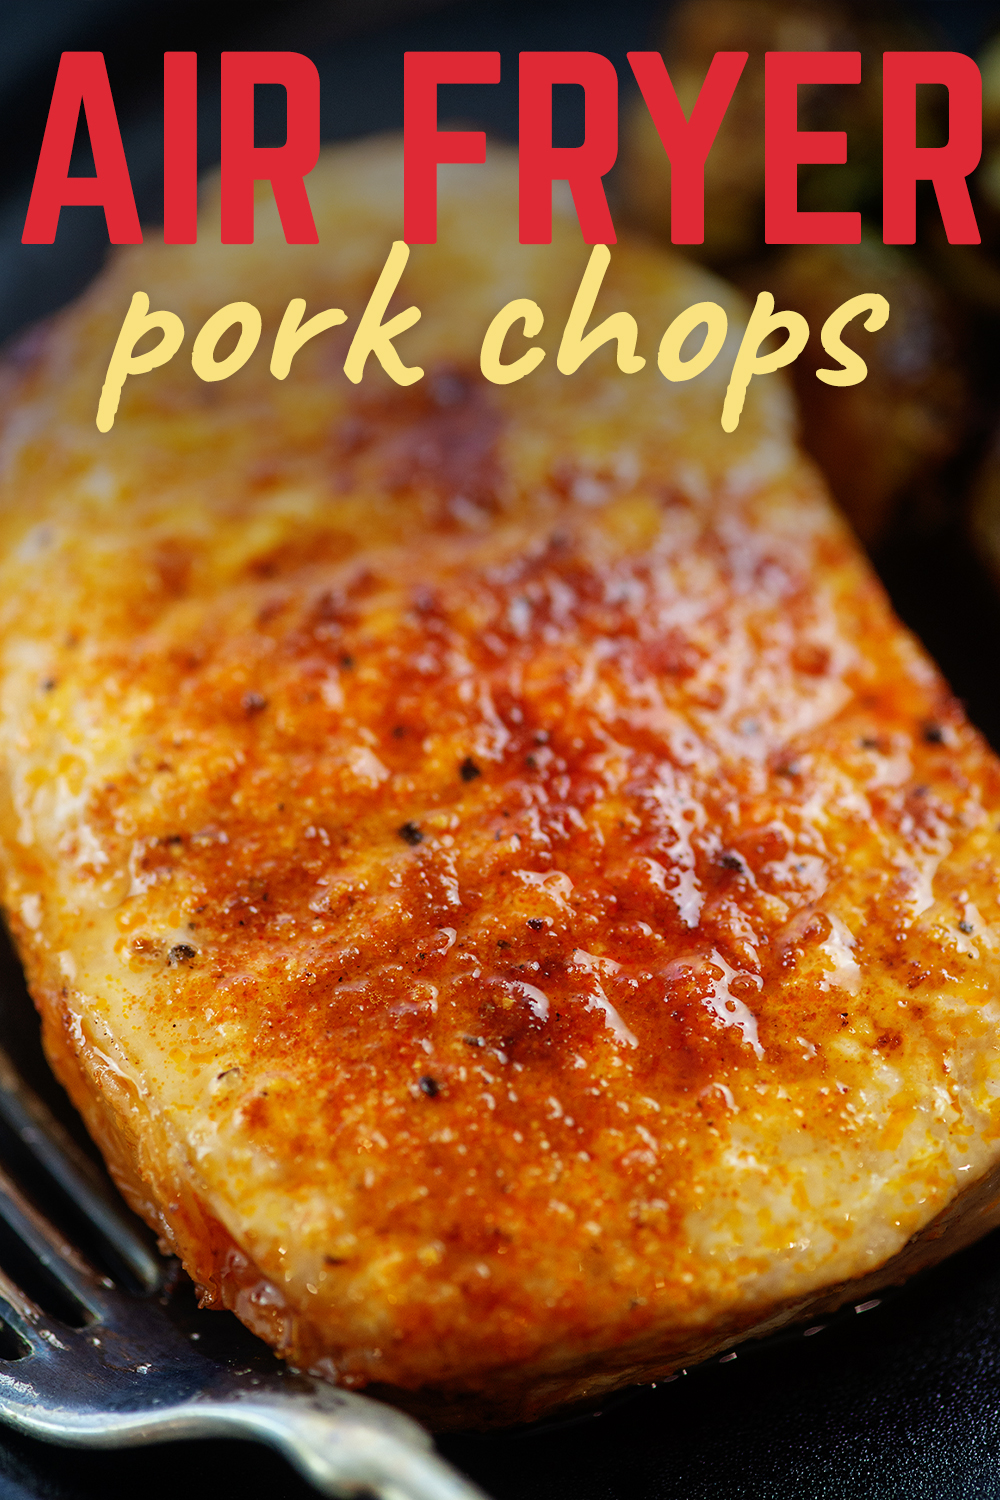 This recipe will make a tender, juicy pork chop in the air fryer!